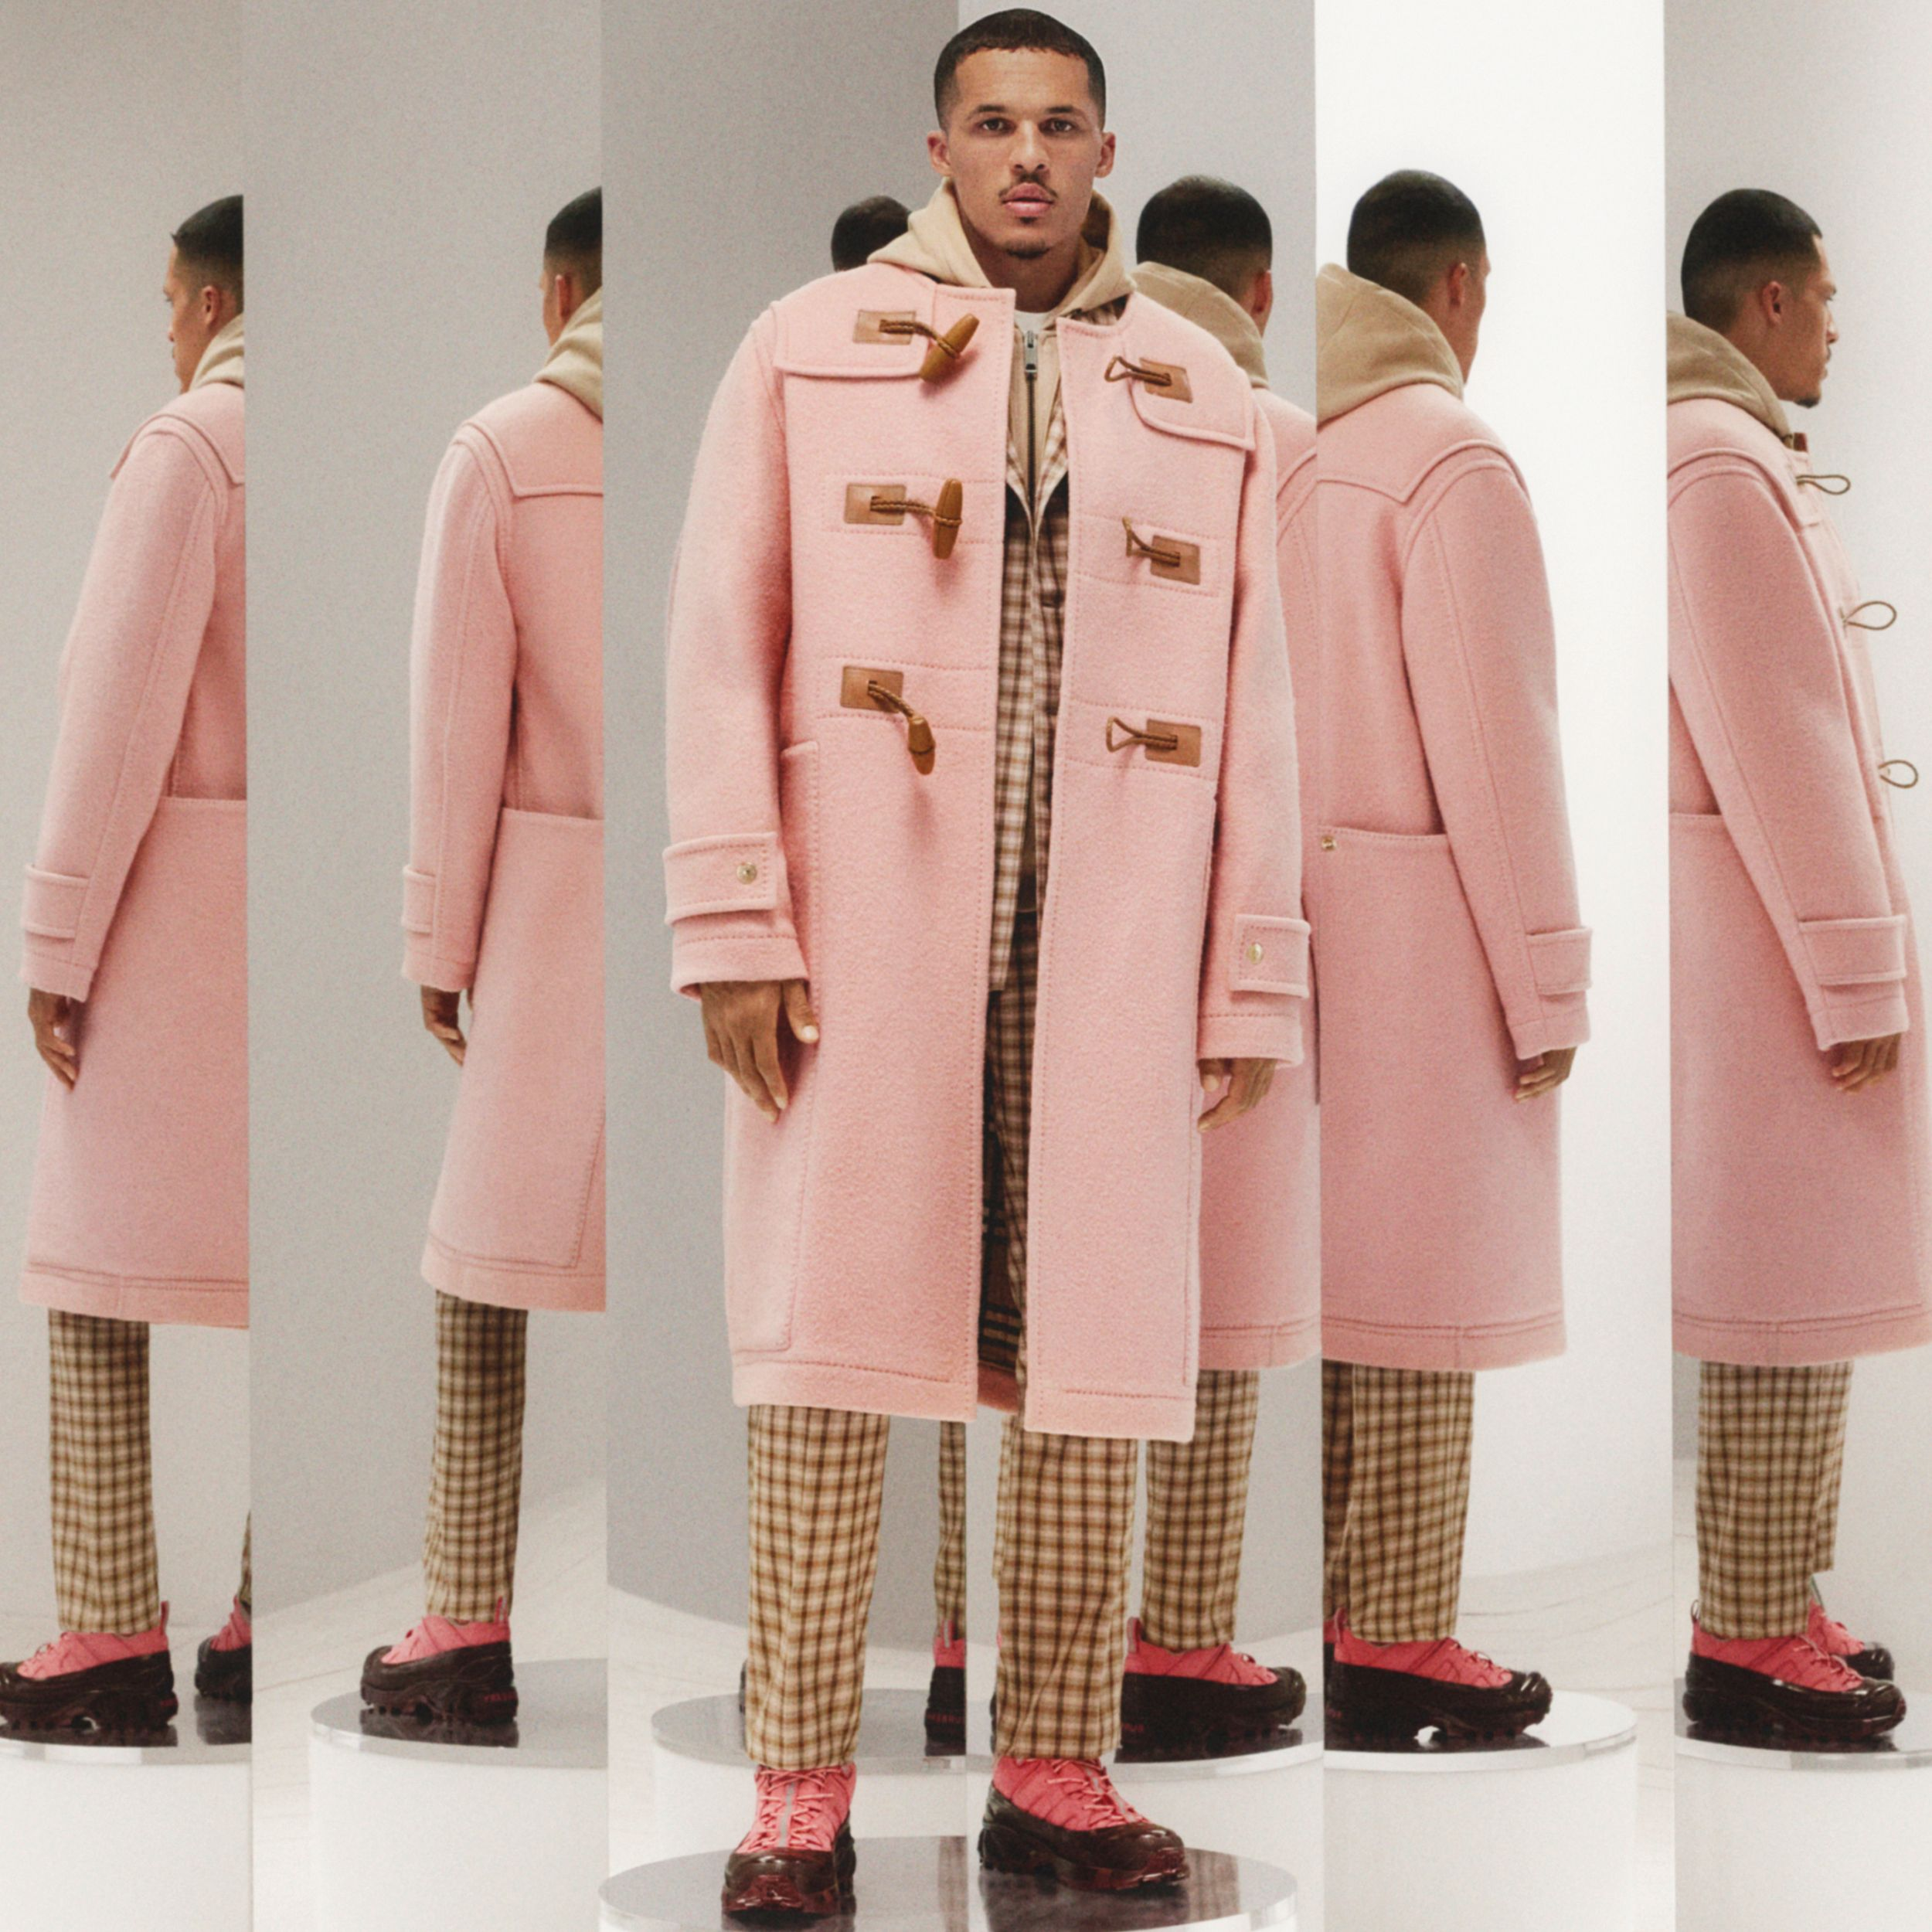 Vintage Check-lined Felted Wool Duffle Coat in Dusty Pink - Men | Burberry Canada - 2